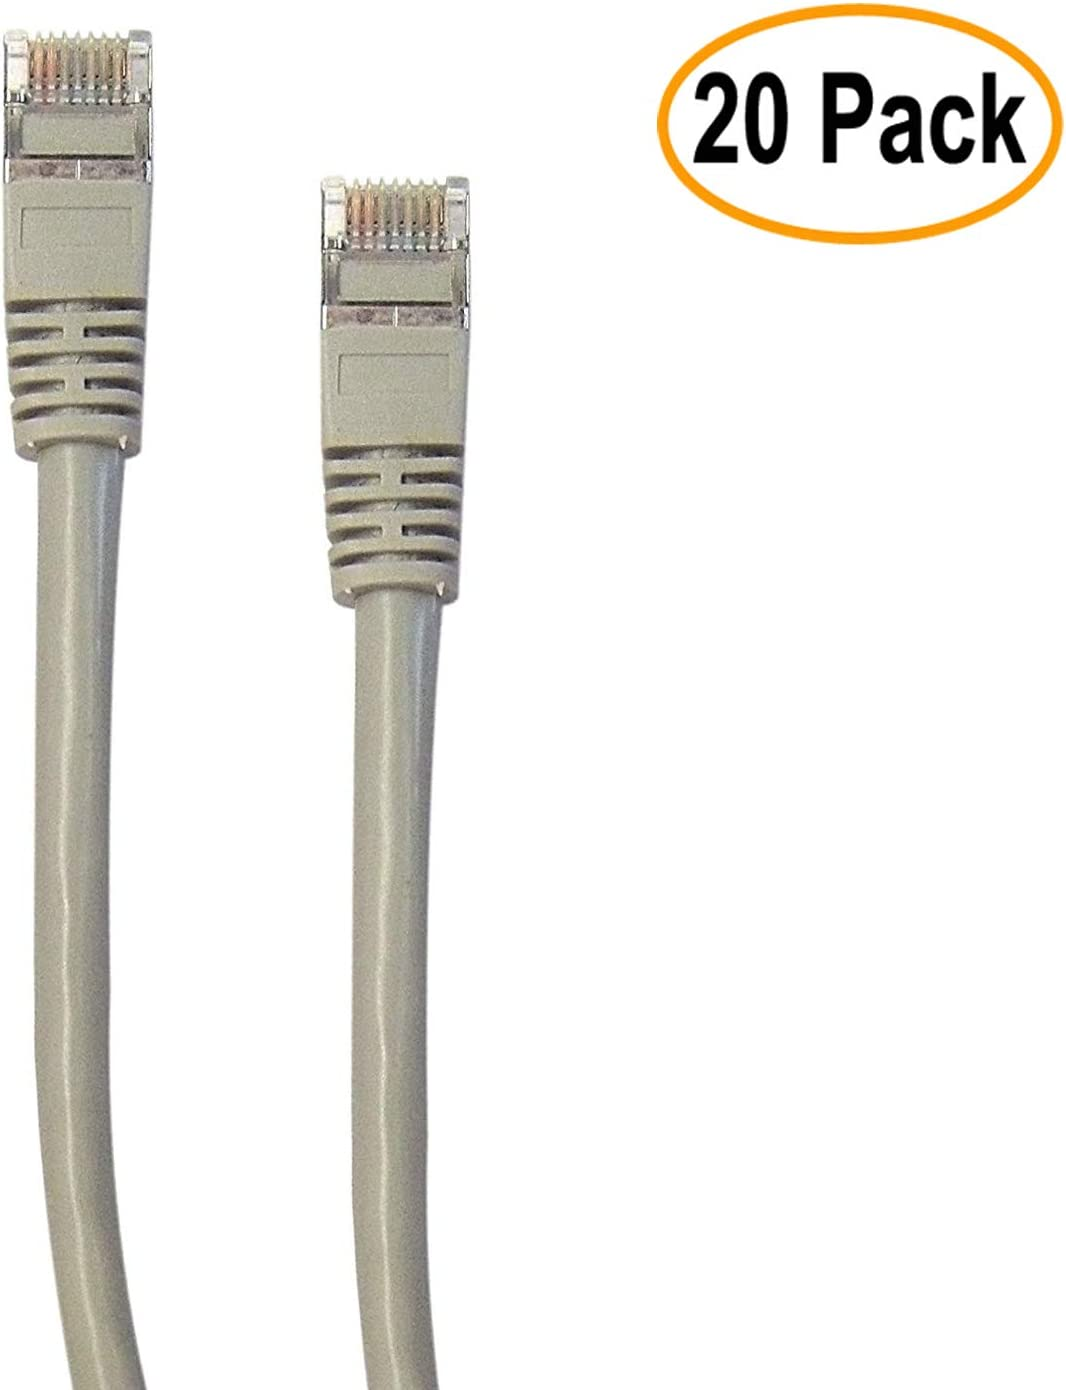 Gray, eDragon Shielded Cat5e Ethernet Cable with Snagless//Molded Boot, 1 Feet//0.3 Meters 20 Pack